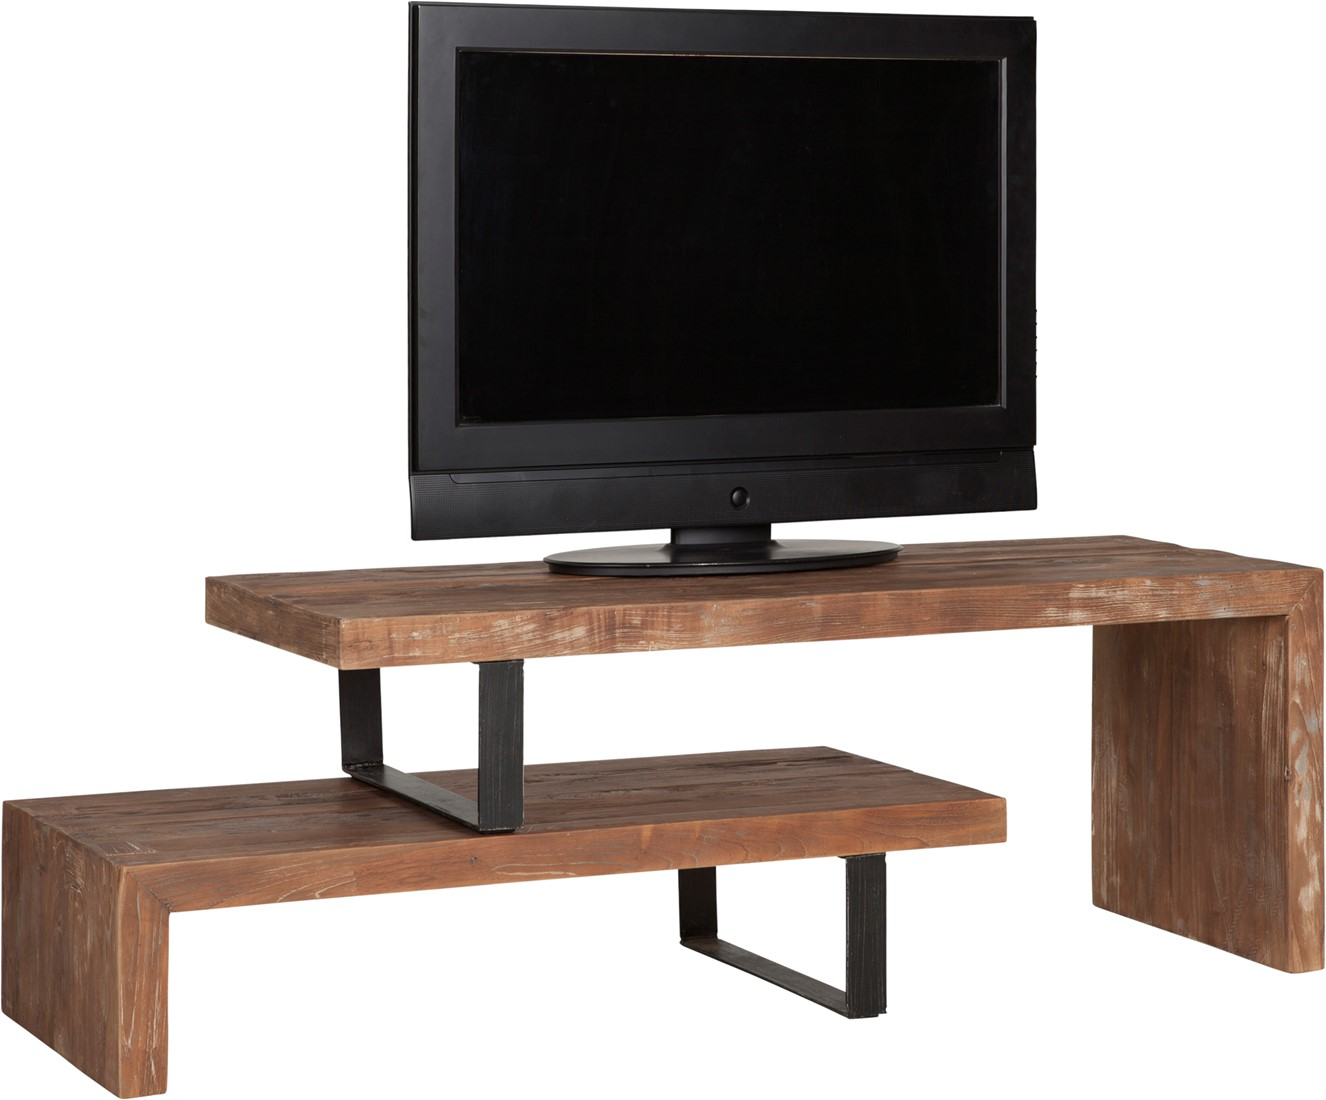 Laag Design Tv Meubel.D Bodhi Classic Tv Stand Taste Extendable 120 Cm